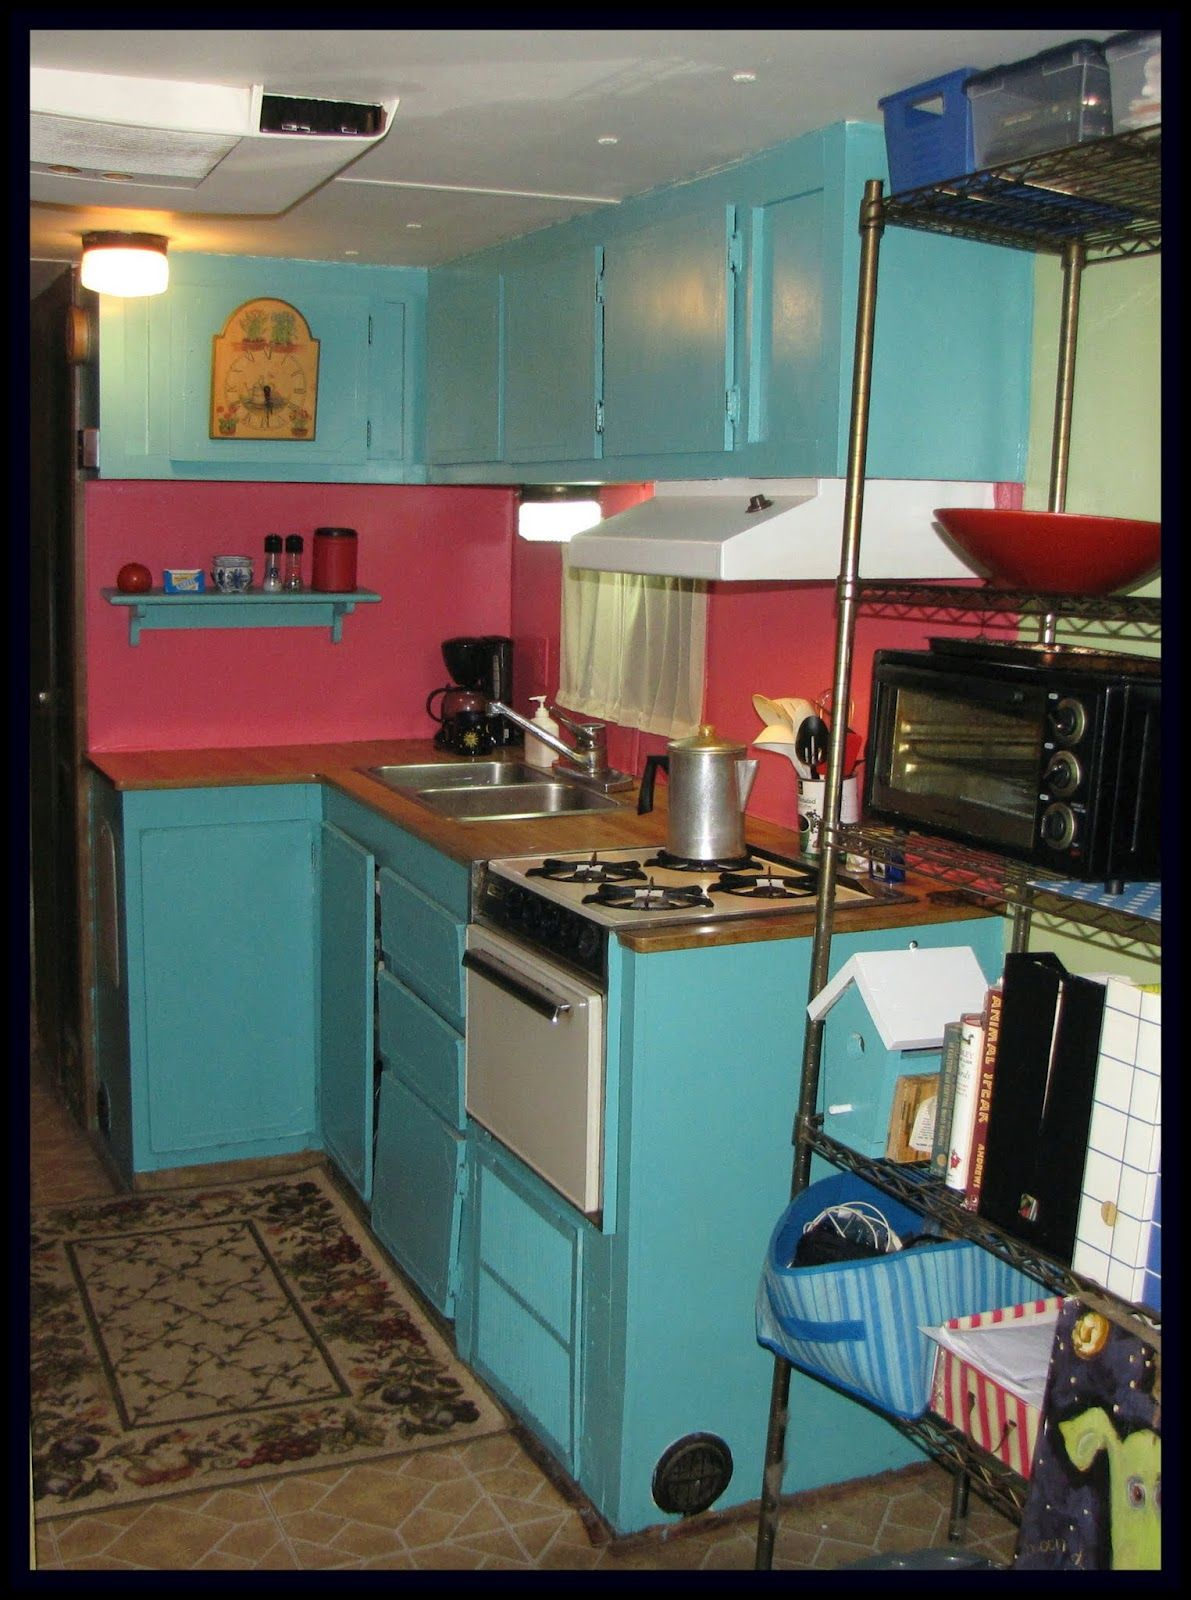 camper remodel ideas - Google Search